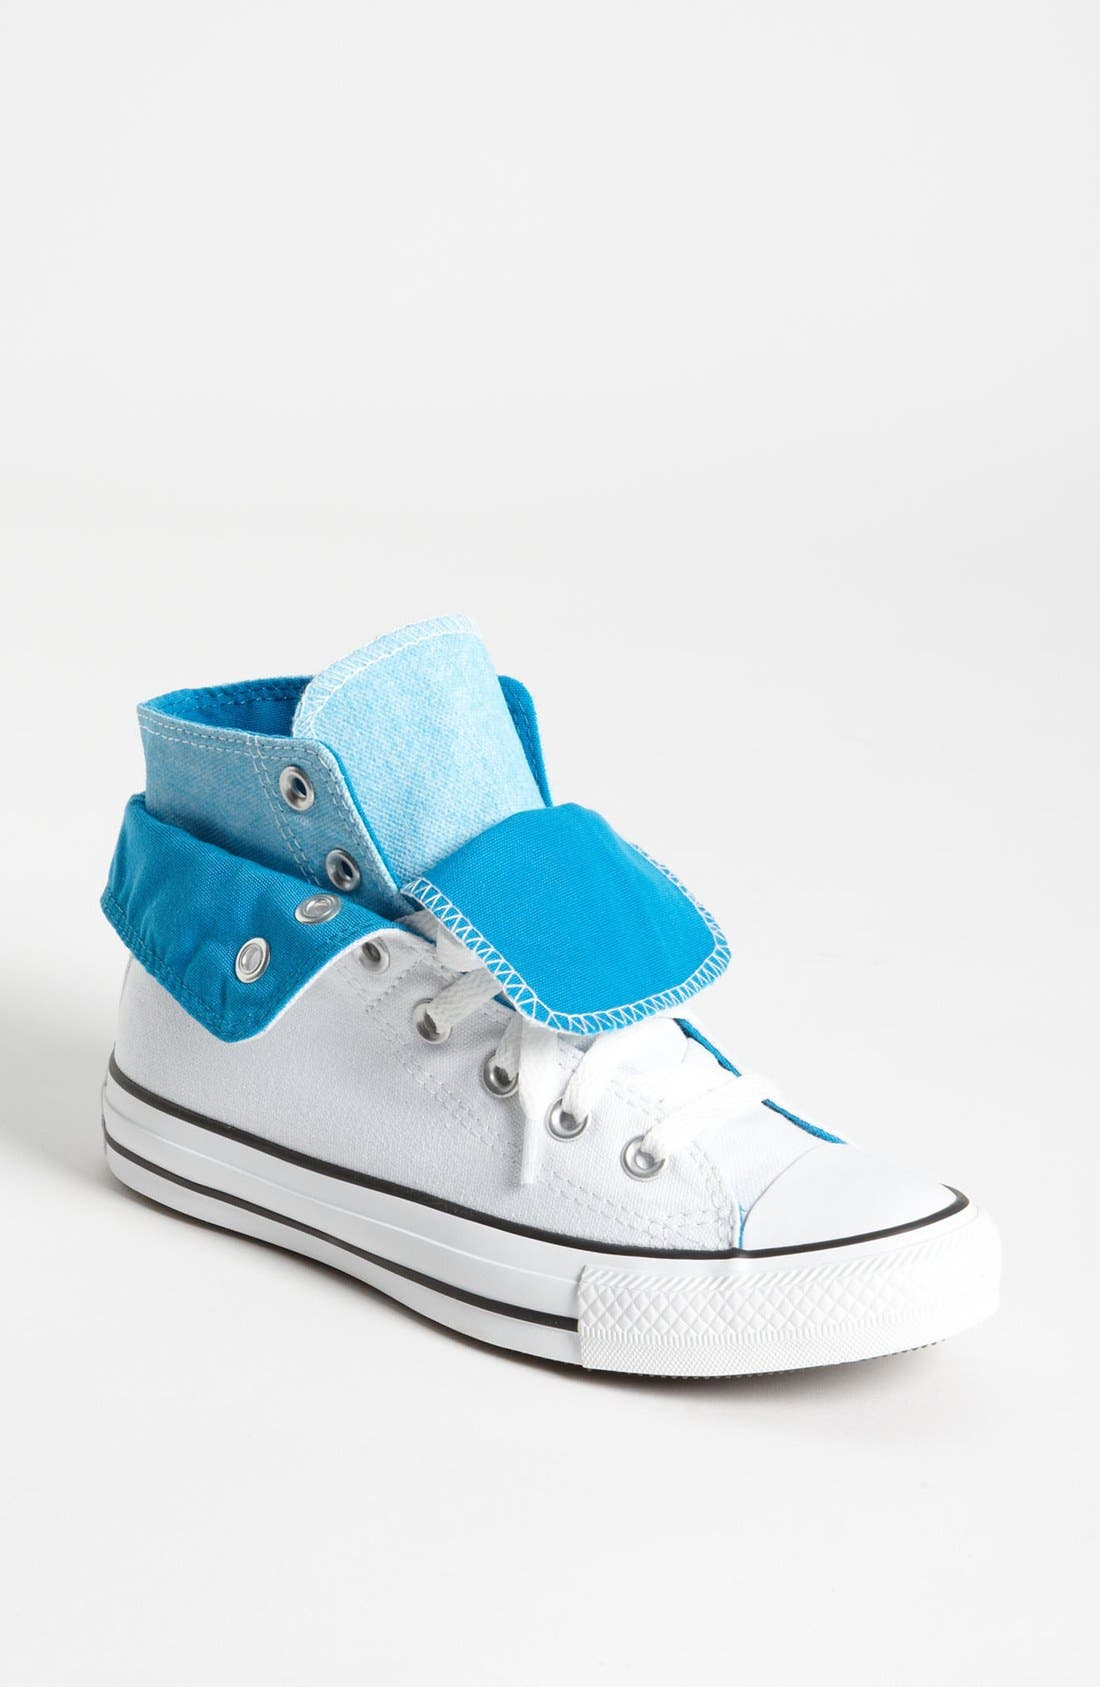 Alternate Image 1 Selected - Converse Chuck Taylor® All Star® Double Tongue High Top Sneaker (Women)